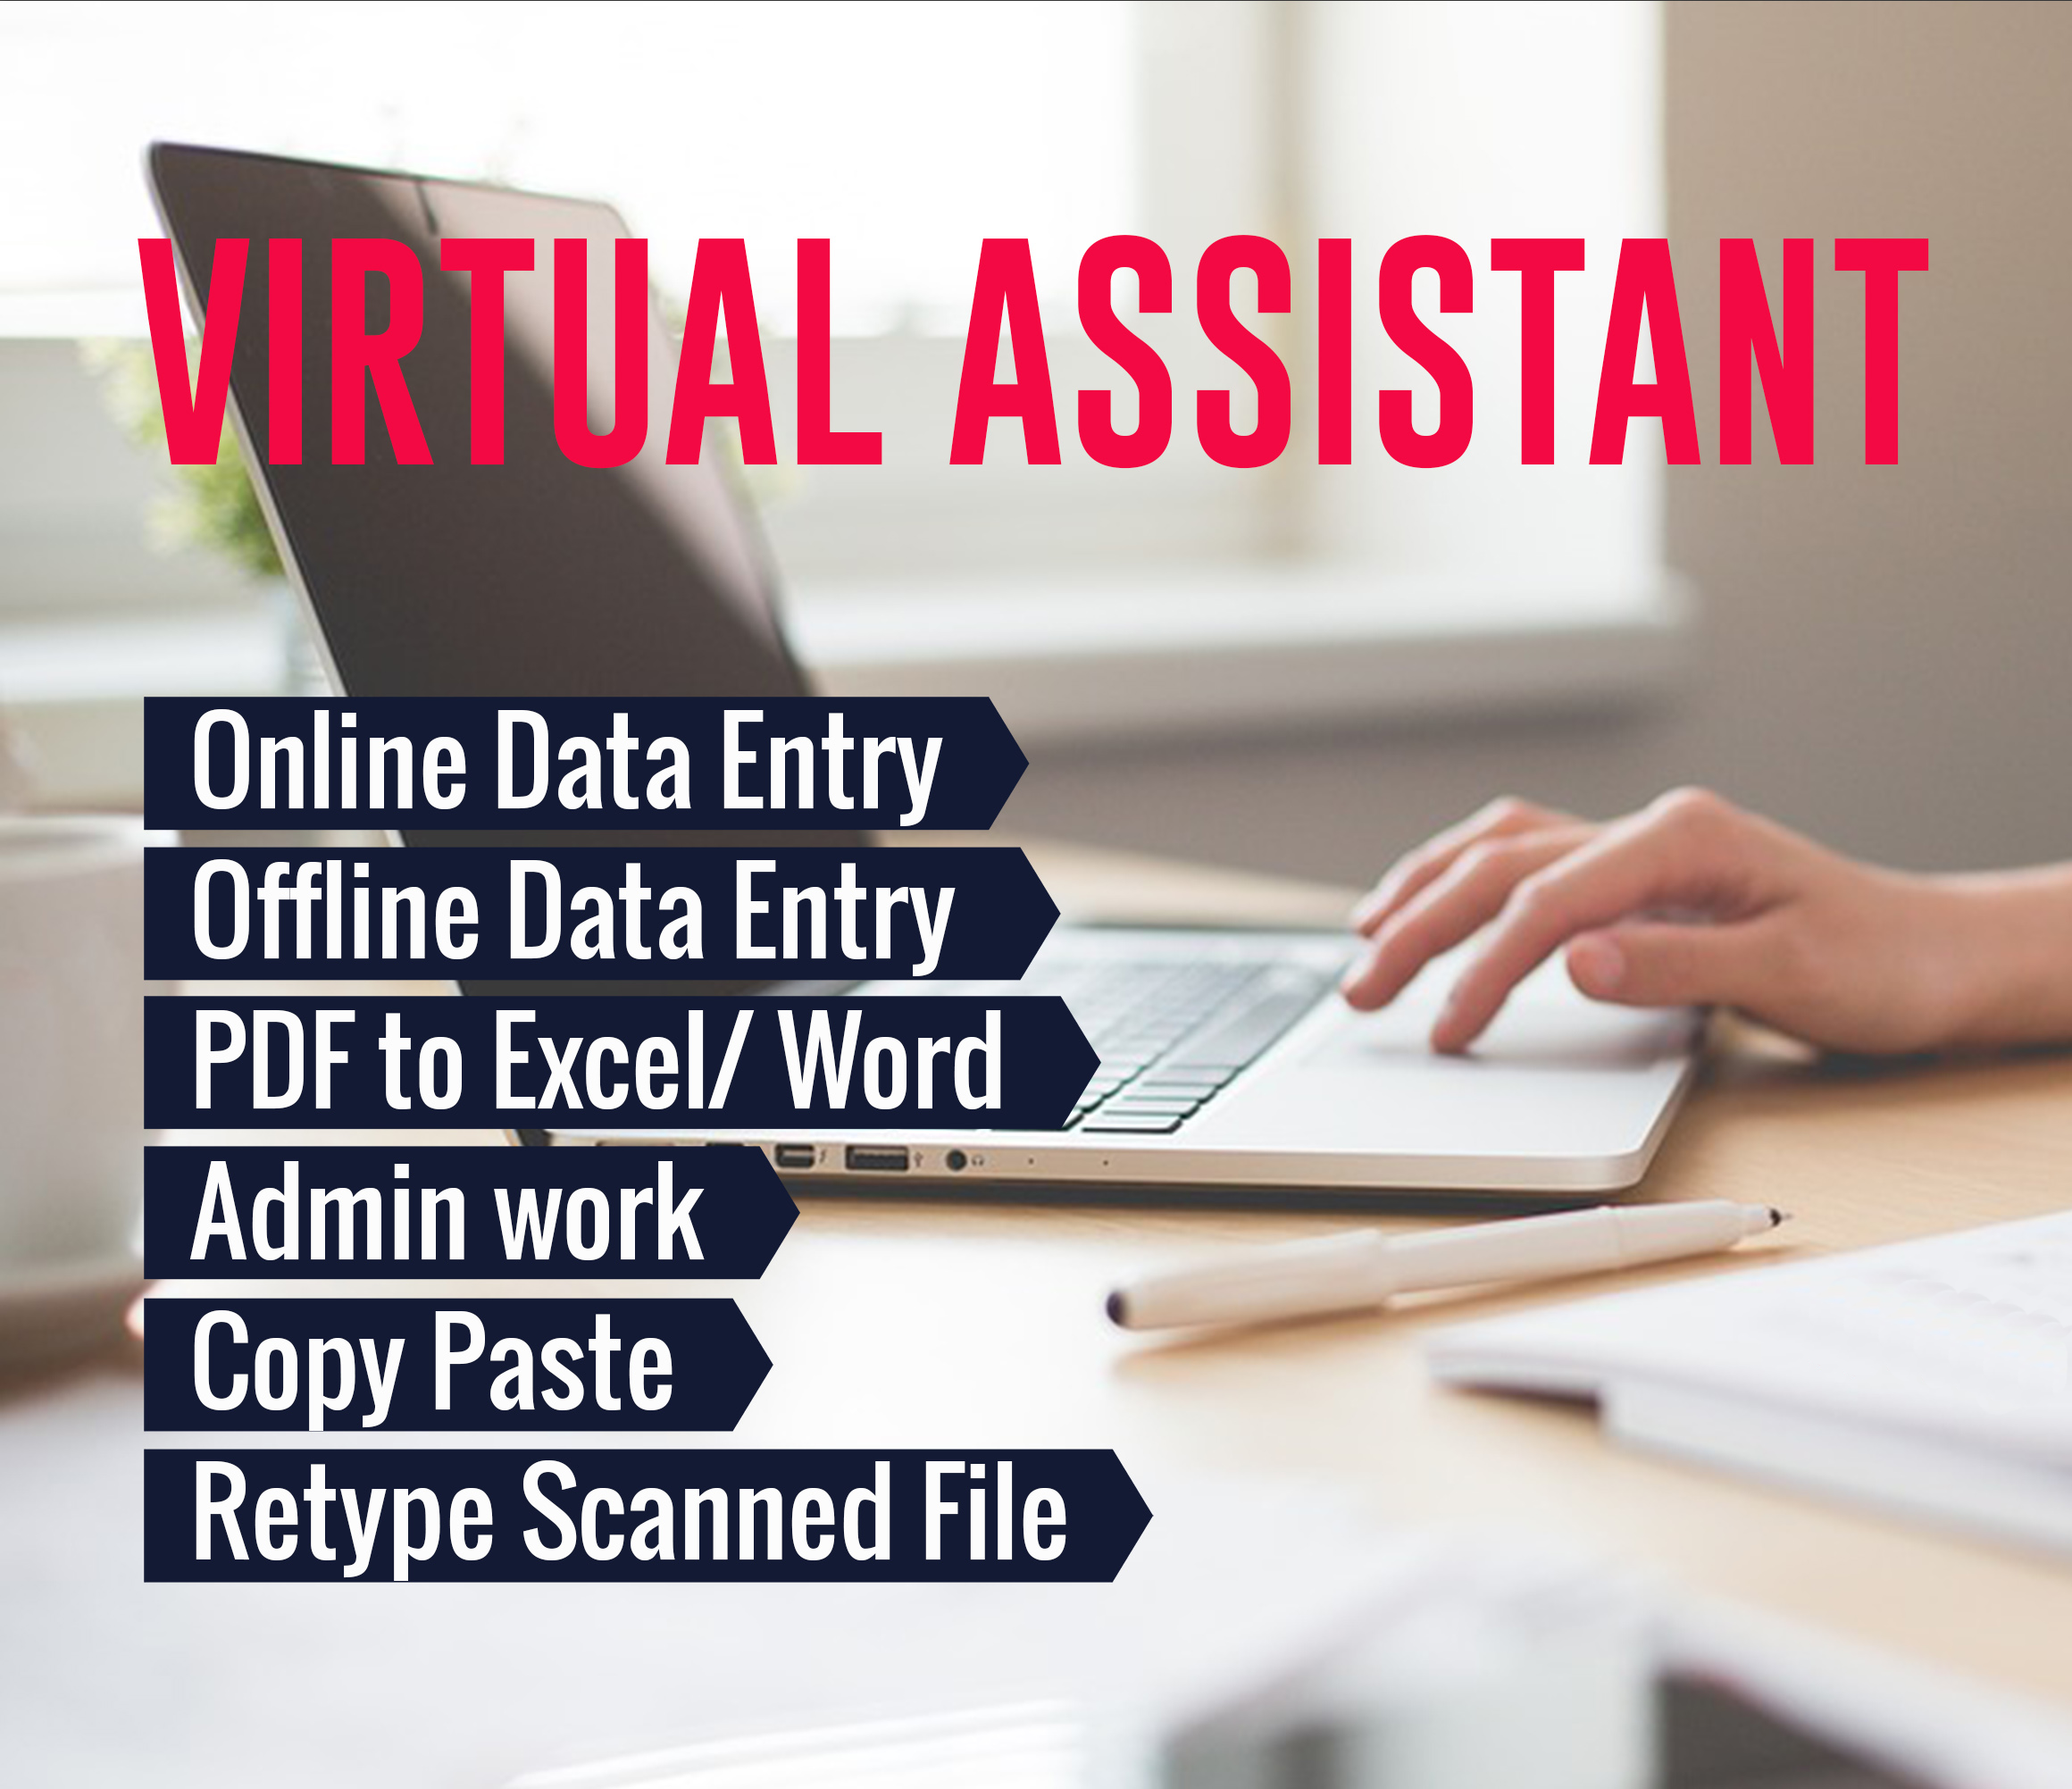 be your virtual assistant for web research,  data entry,  data mining,  excel